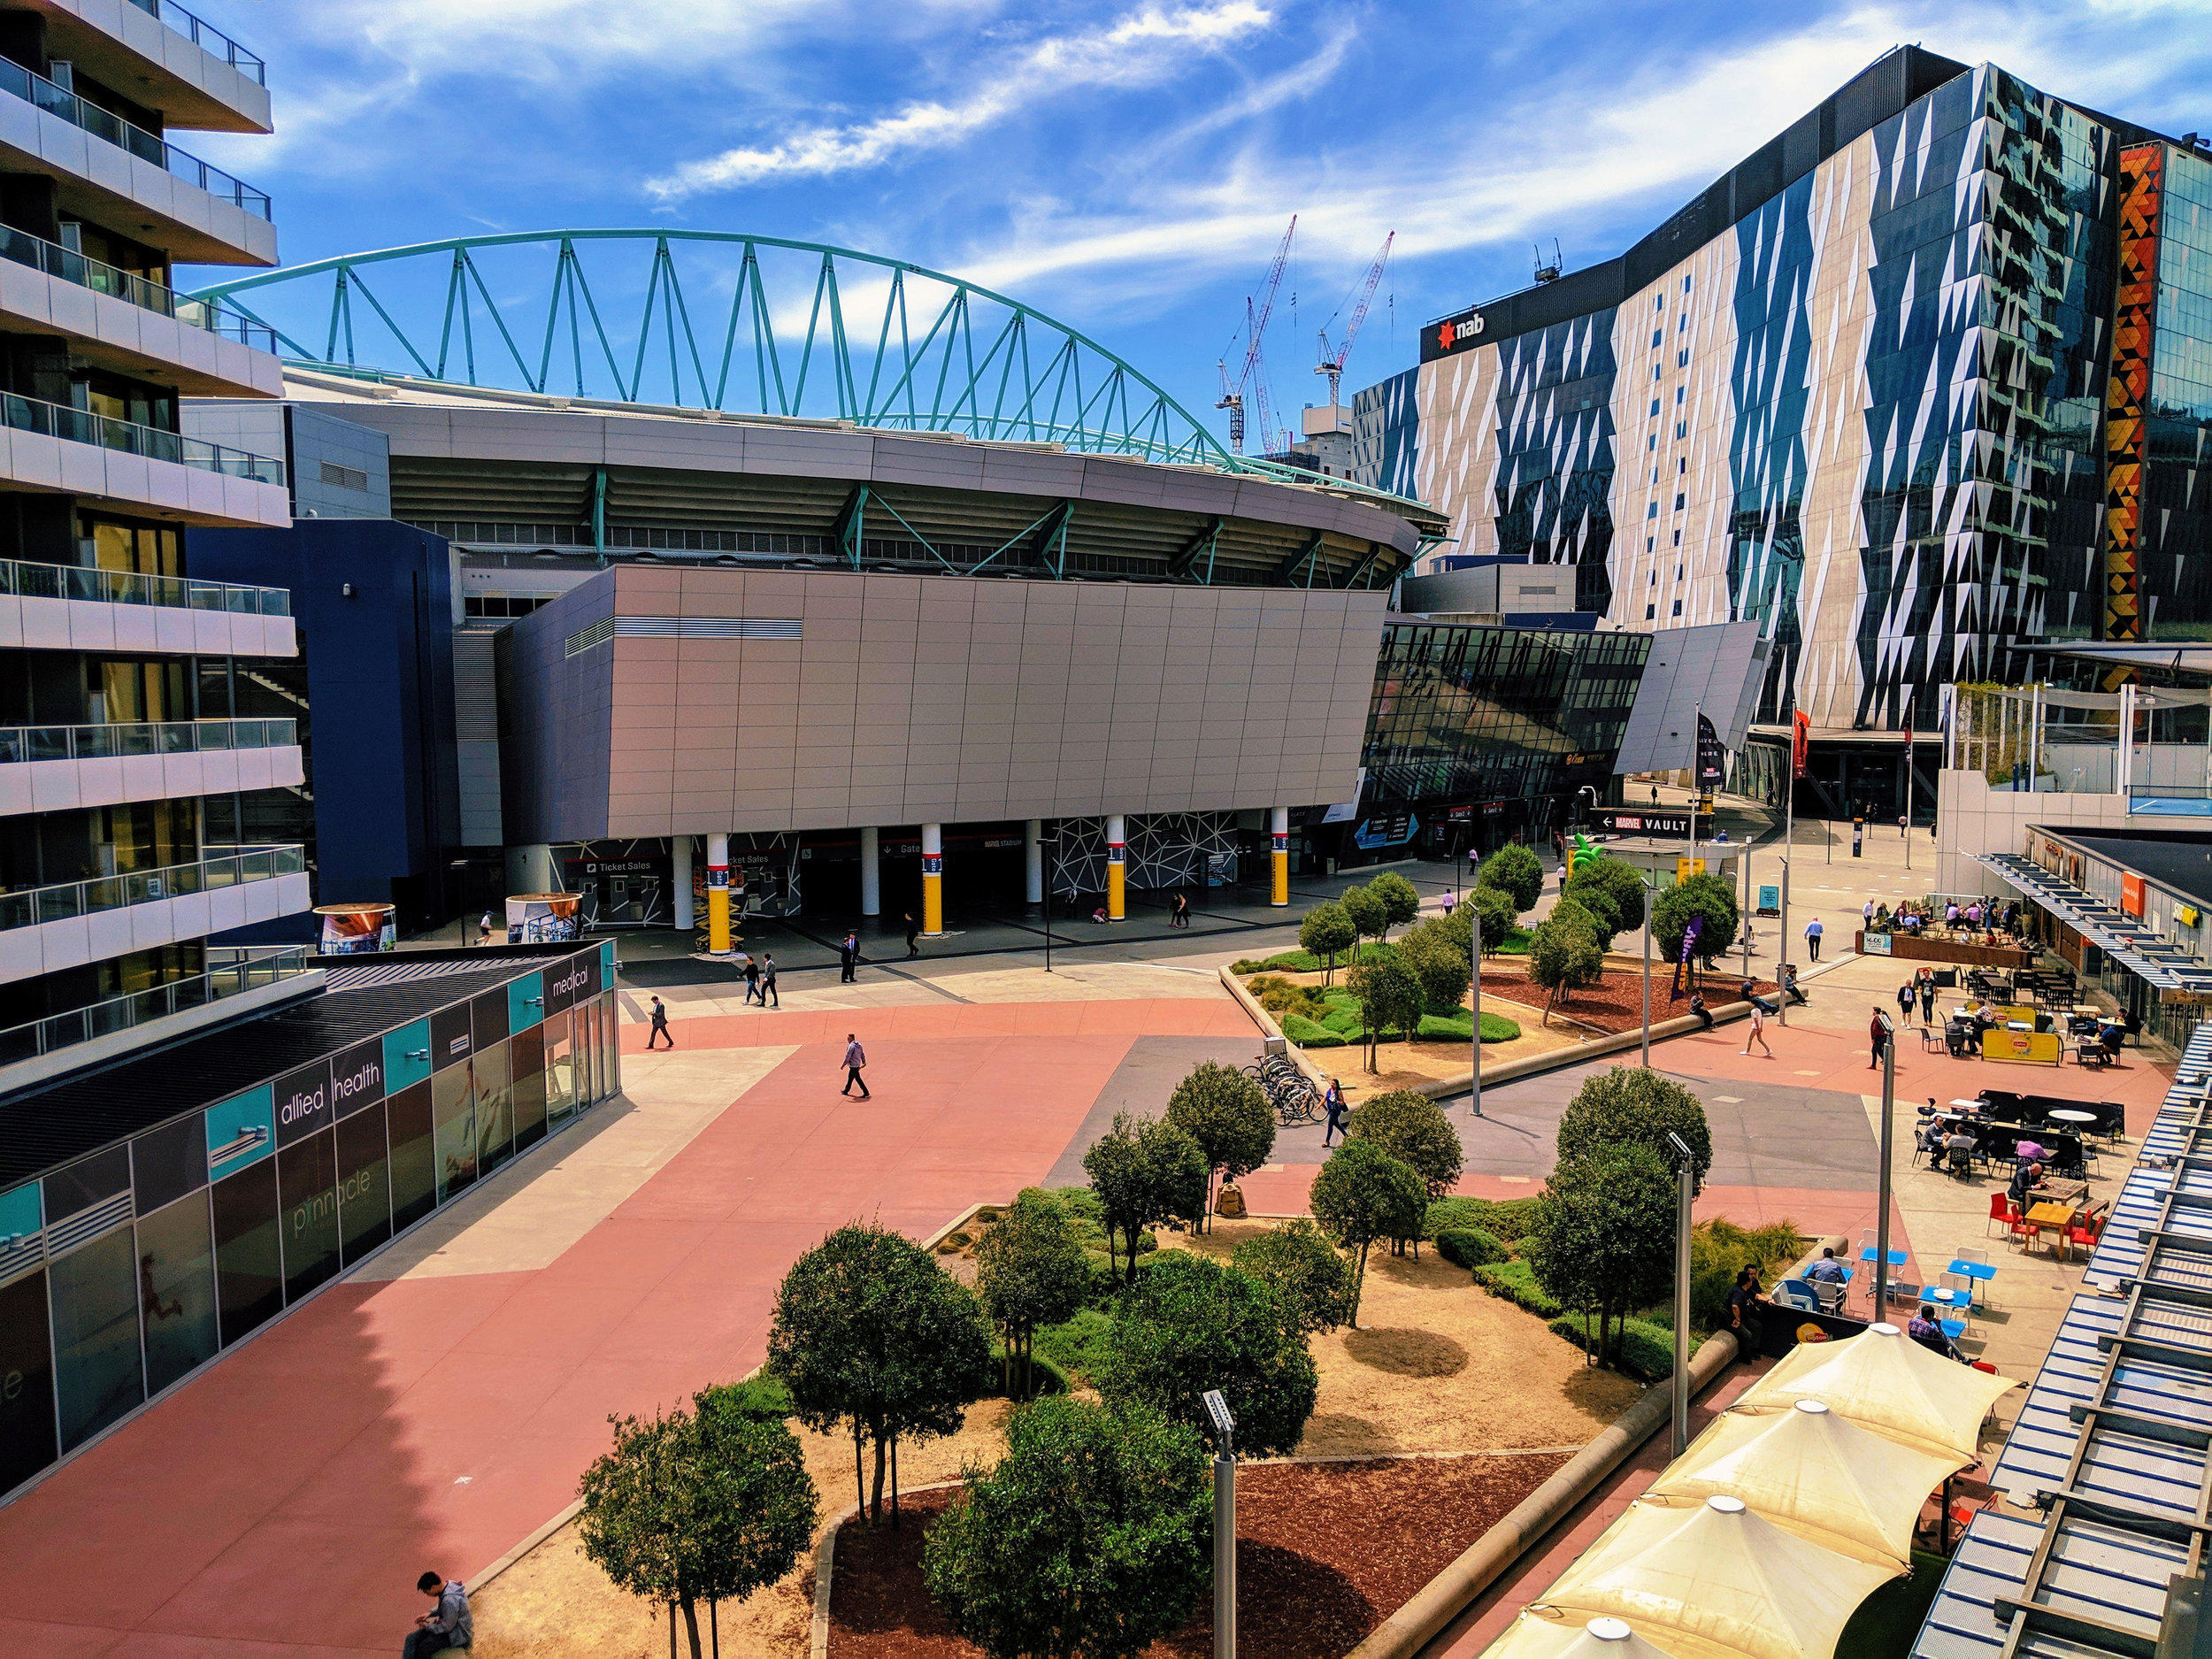 Docklands Stadium, also known by its current sponsorship name of Marvel Stadium, is a multi-purpose sports and entertainment stadium in the Docklands precinct of Melbourne, Victoria, Australia.